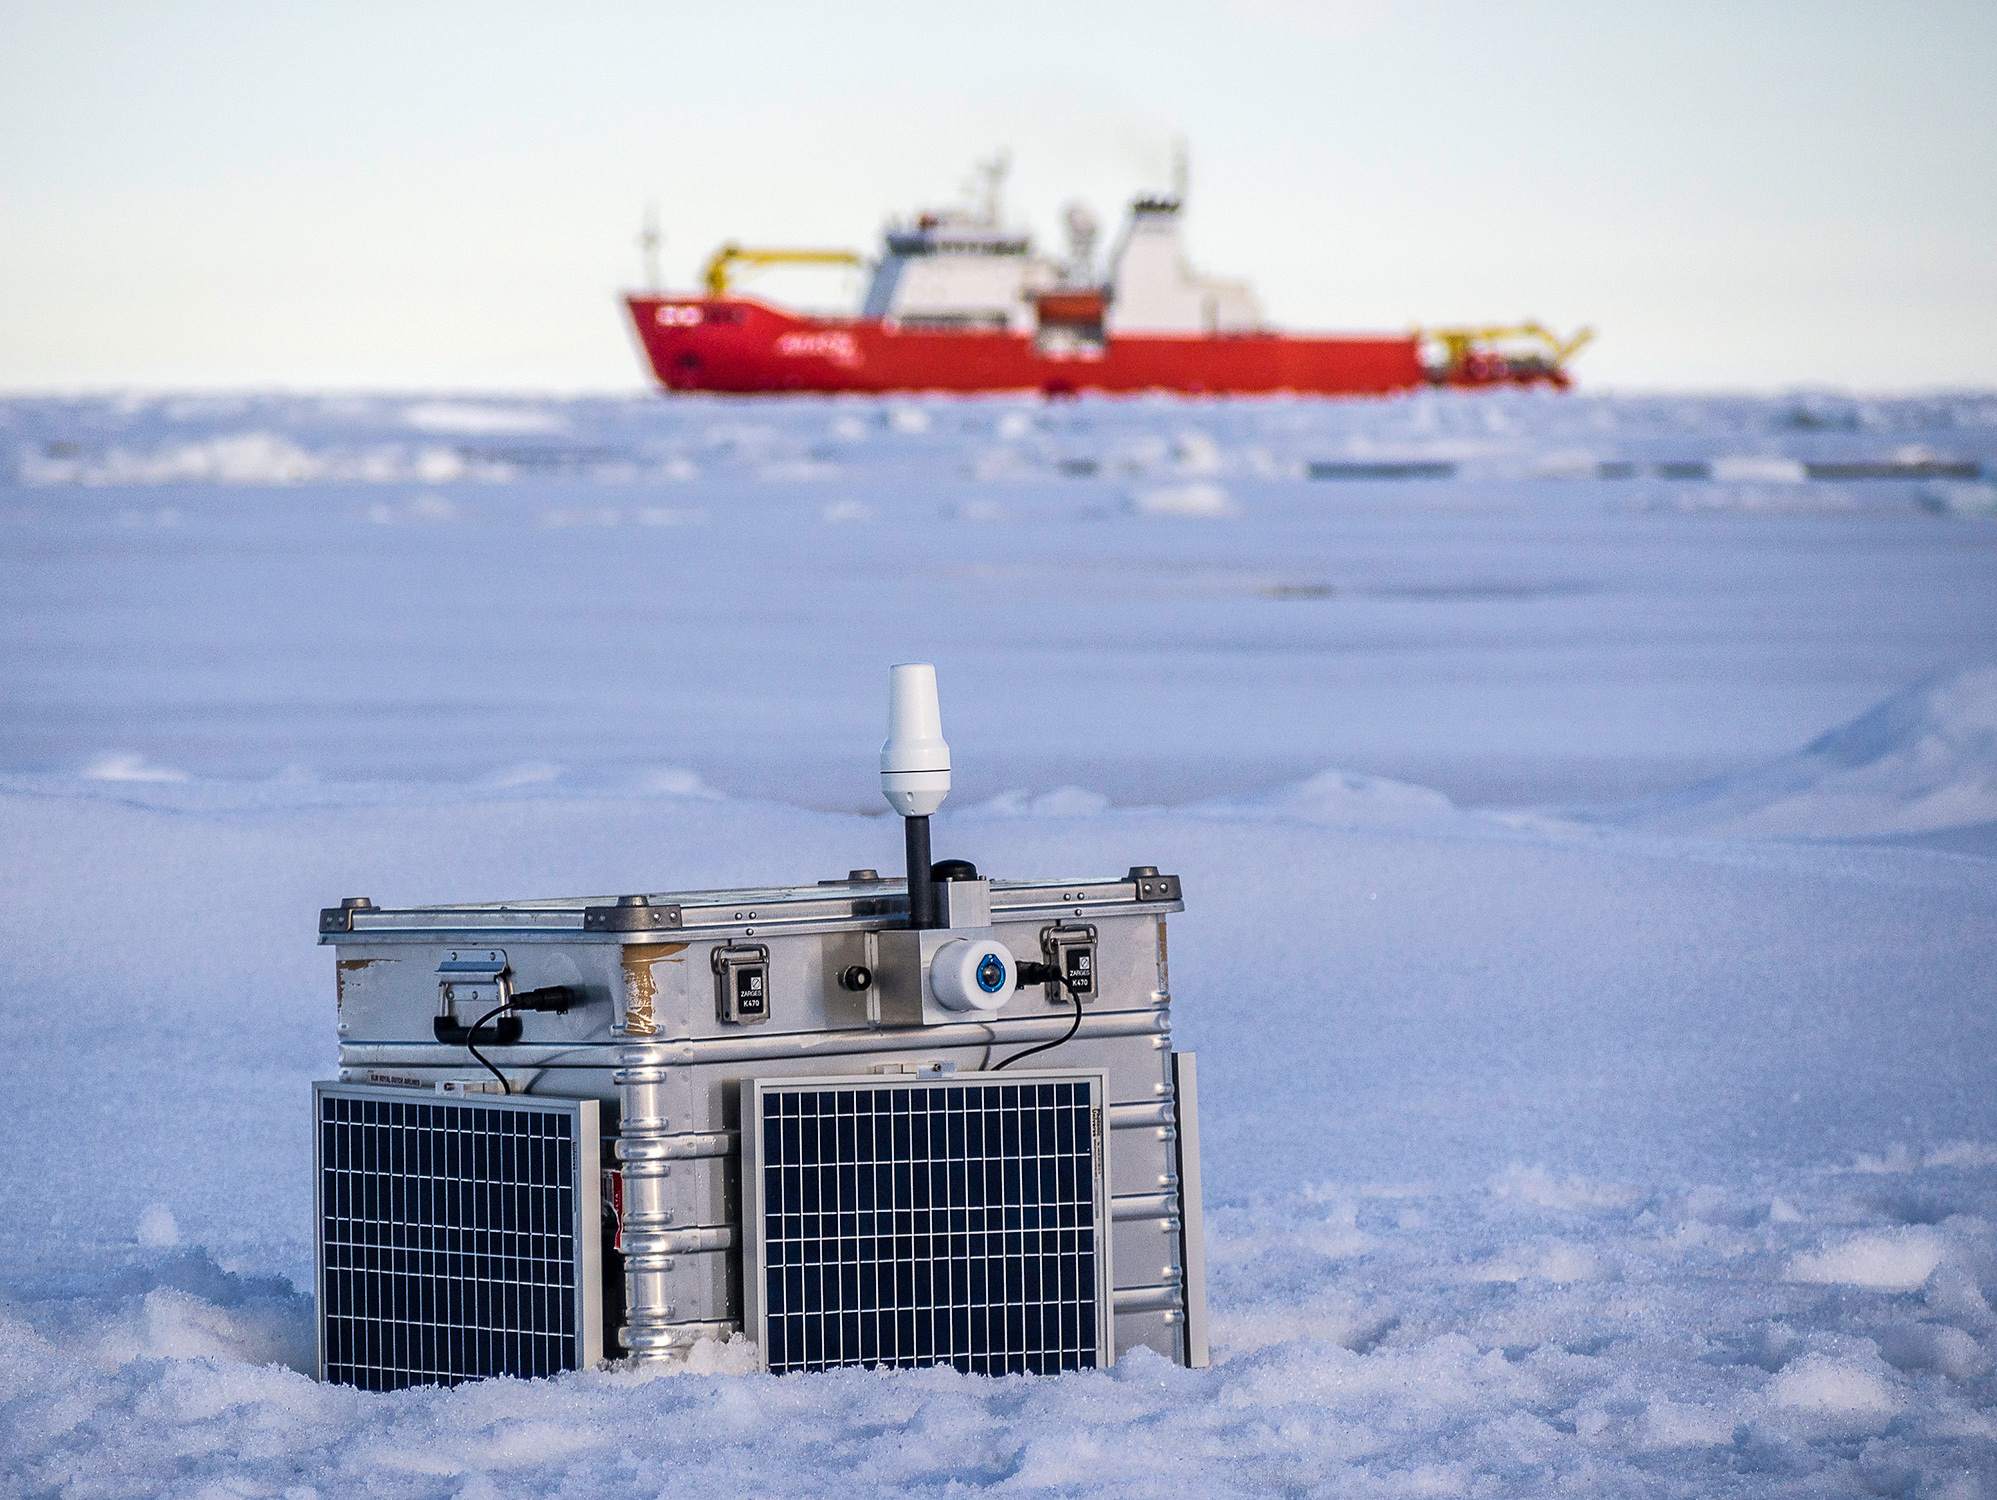 Navy Funds A Small Robot Army To Study The Arctic